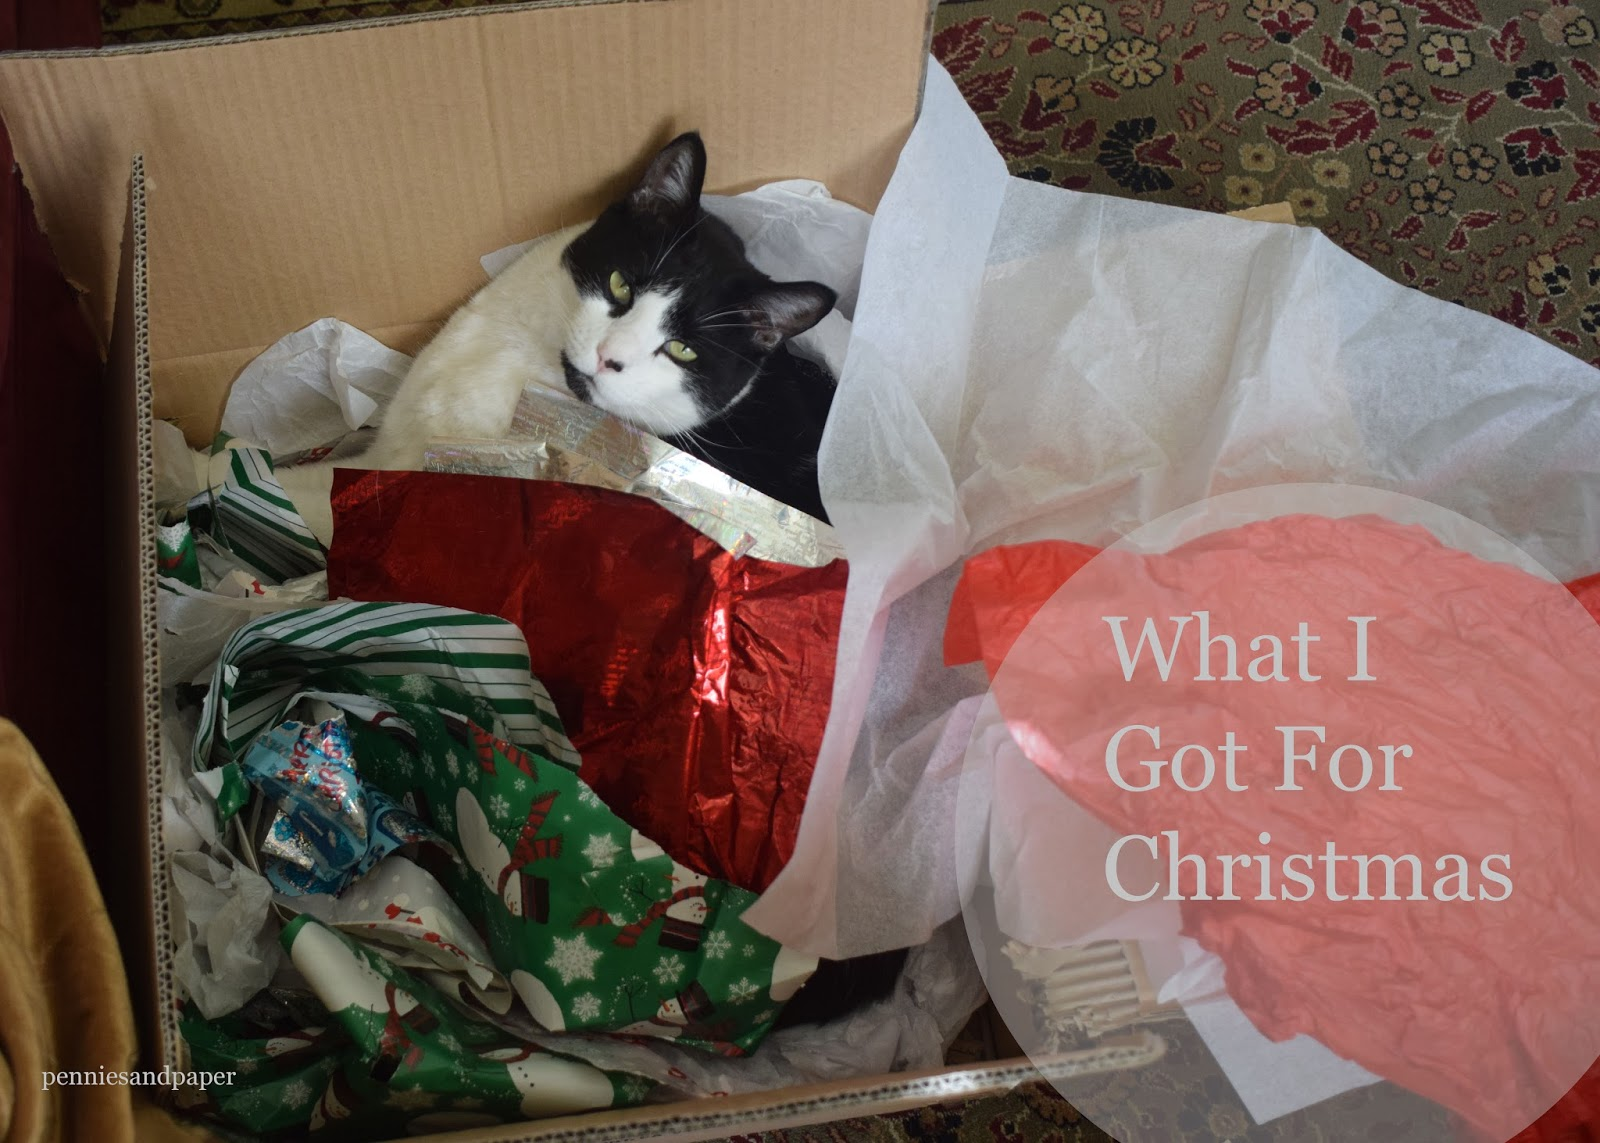 Pennies & Paper Blog | Christmas Gifts 2014